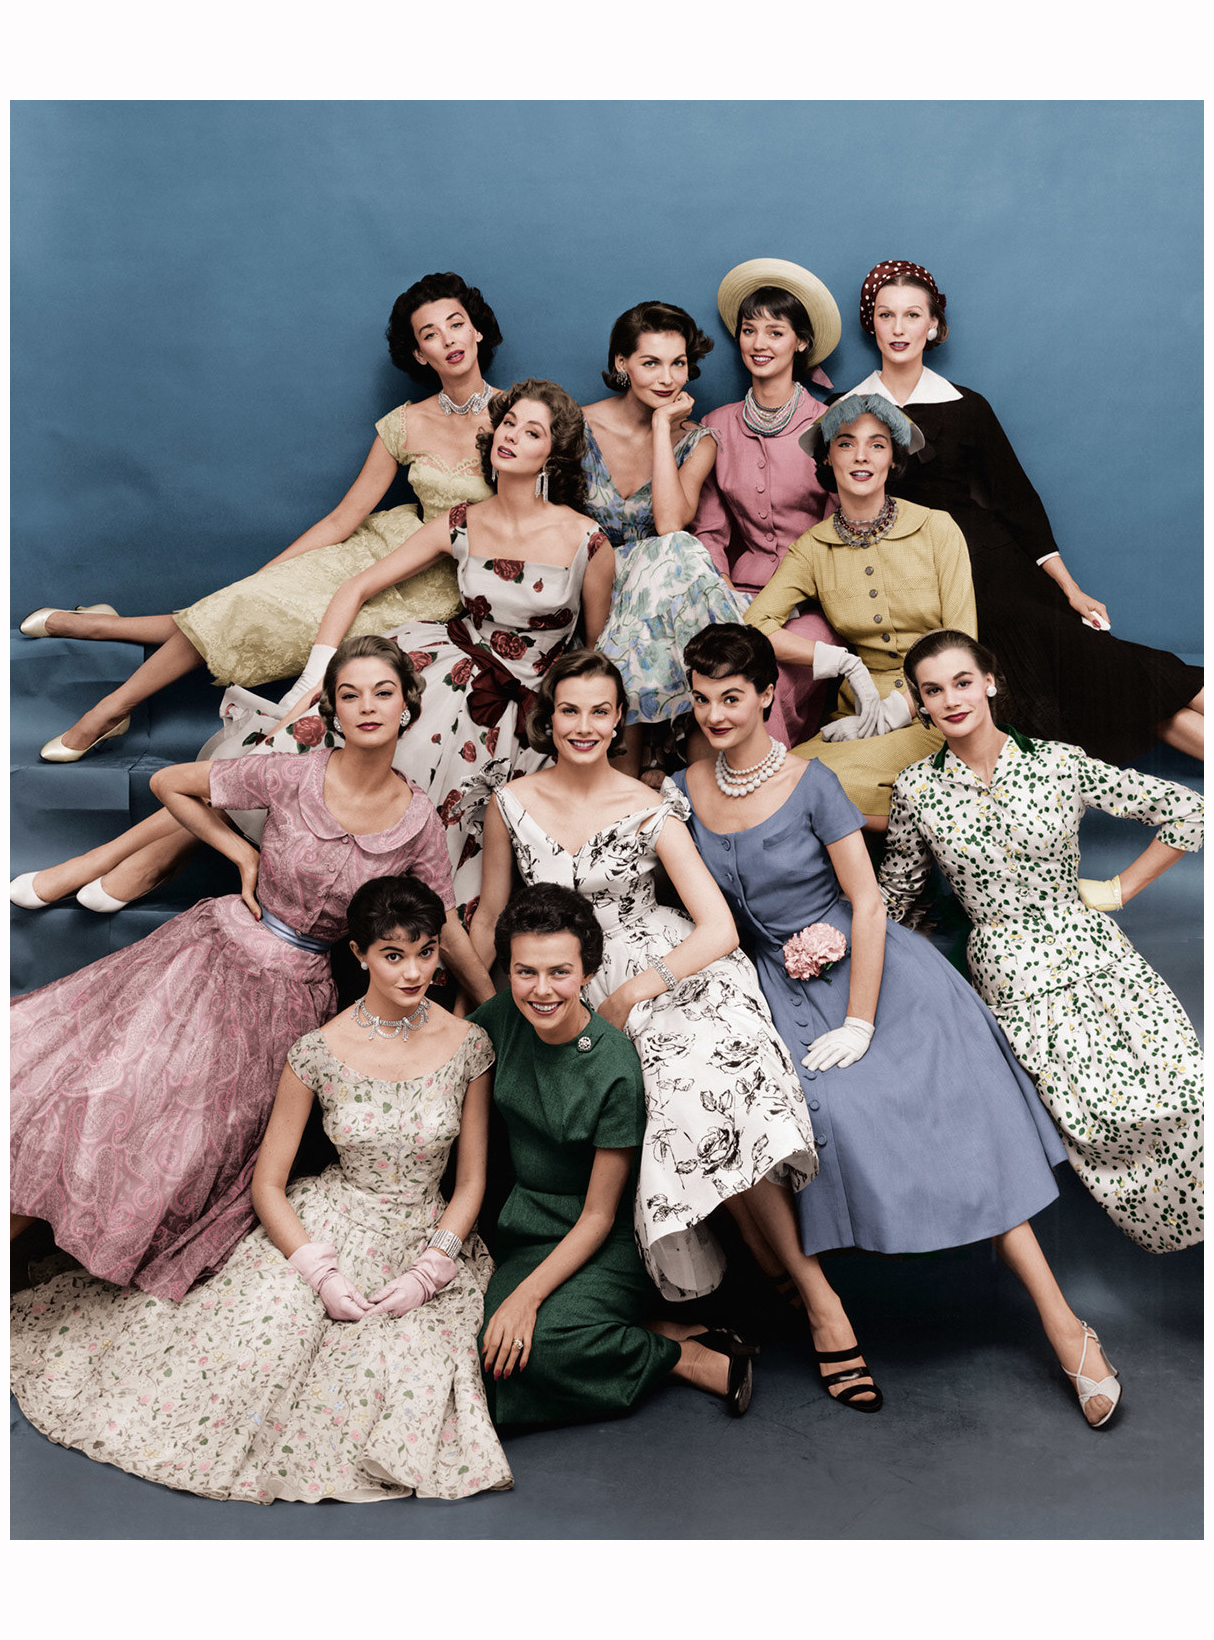 Eileen front row in green with a fleet of ford models 1955